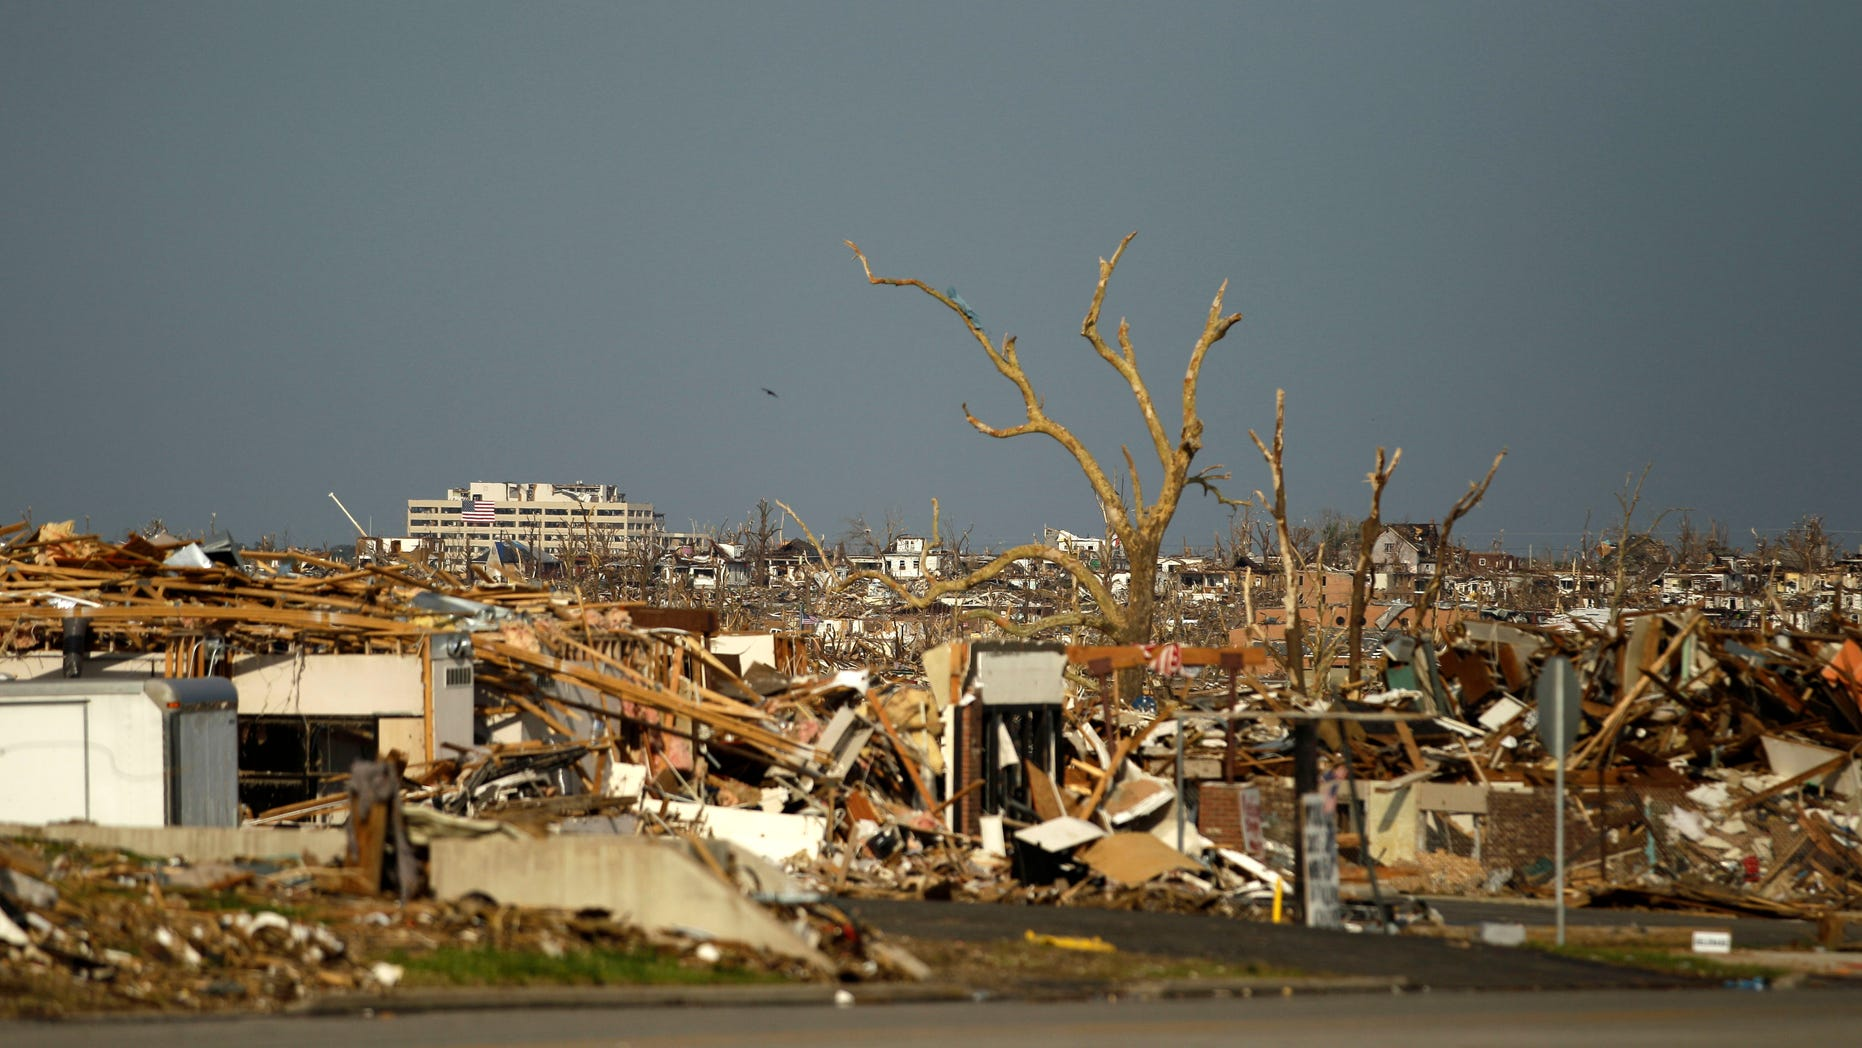 May 30: Damage is seen in a devastated Joplin, Missouri neighborhood. A federal agency was set to release a report today detailing communication efforts ahead of the massive twister that hit Joplin, killing more than 160 people.